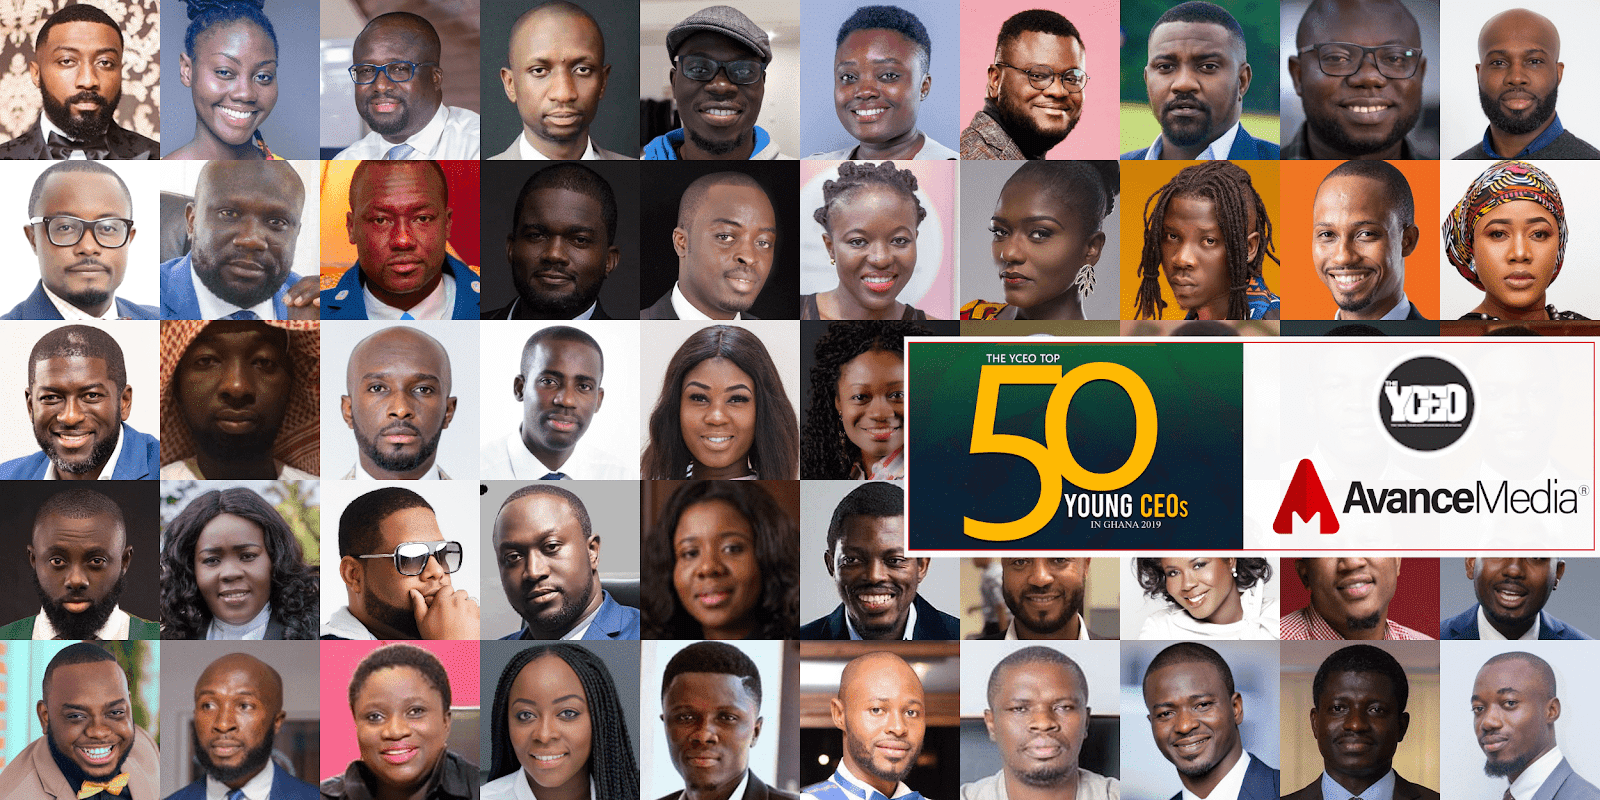 Photo of Stonebwoy, Richie Mensah, Roberta Annan And Others Make 2019 Top 50 Young CEOs In Ghana List